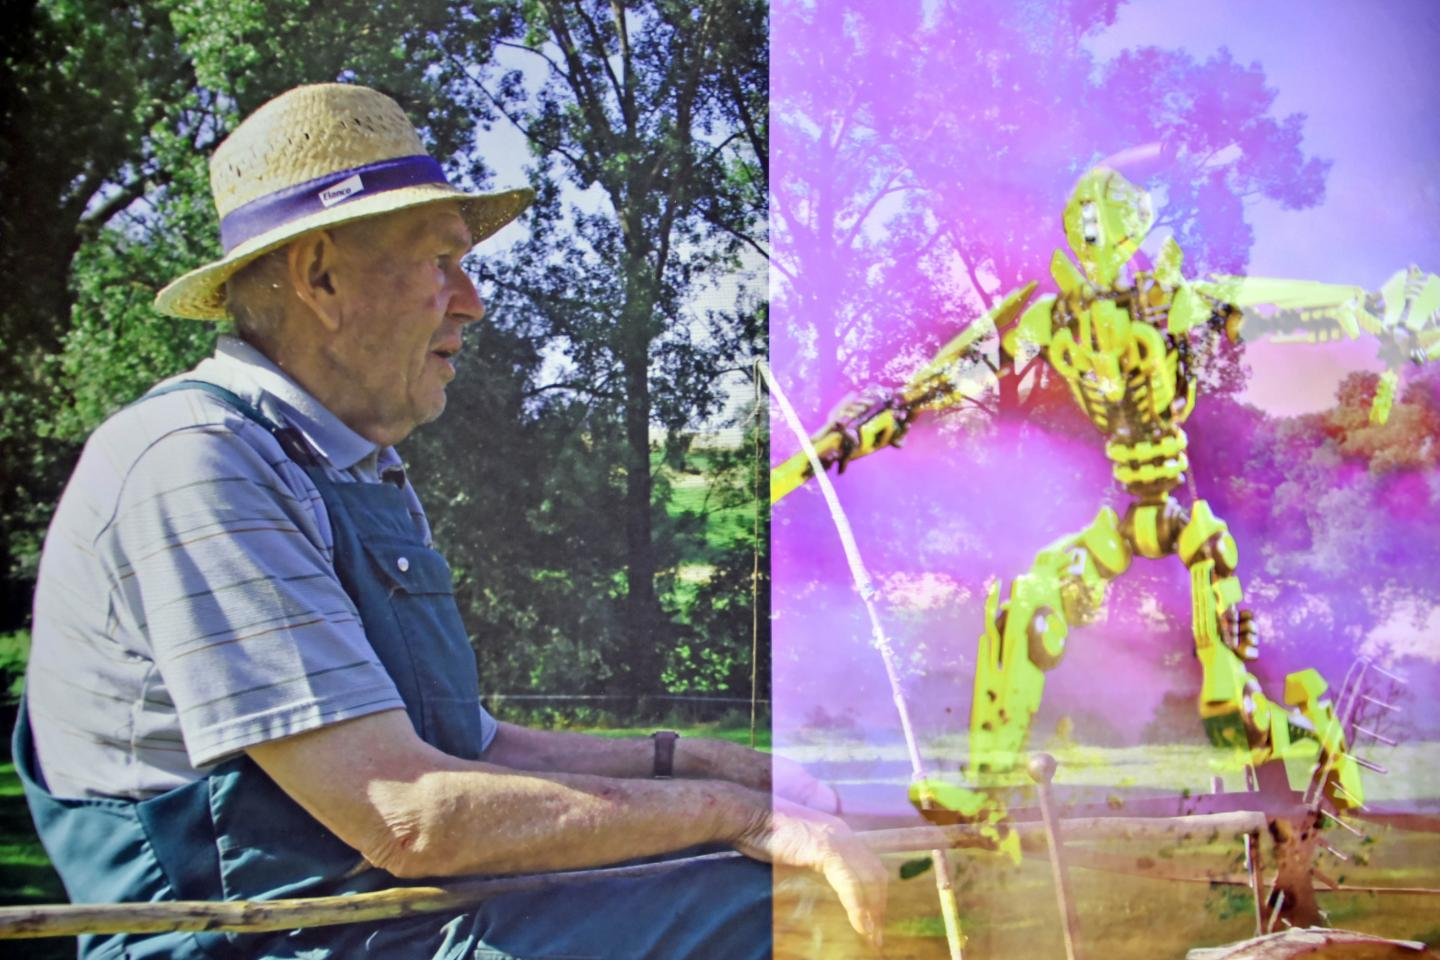 Elderly People and Robots